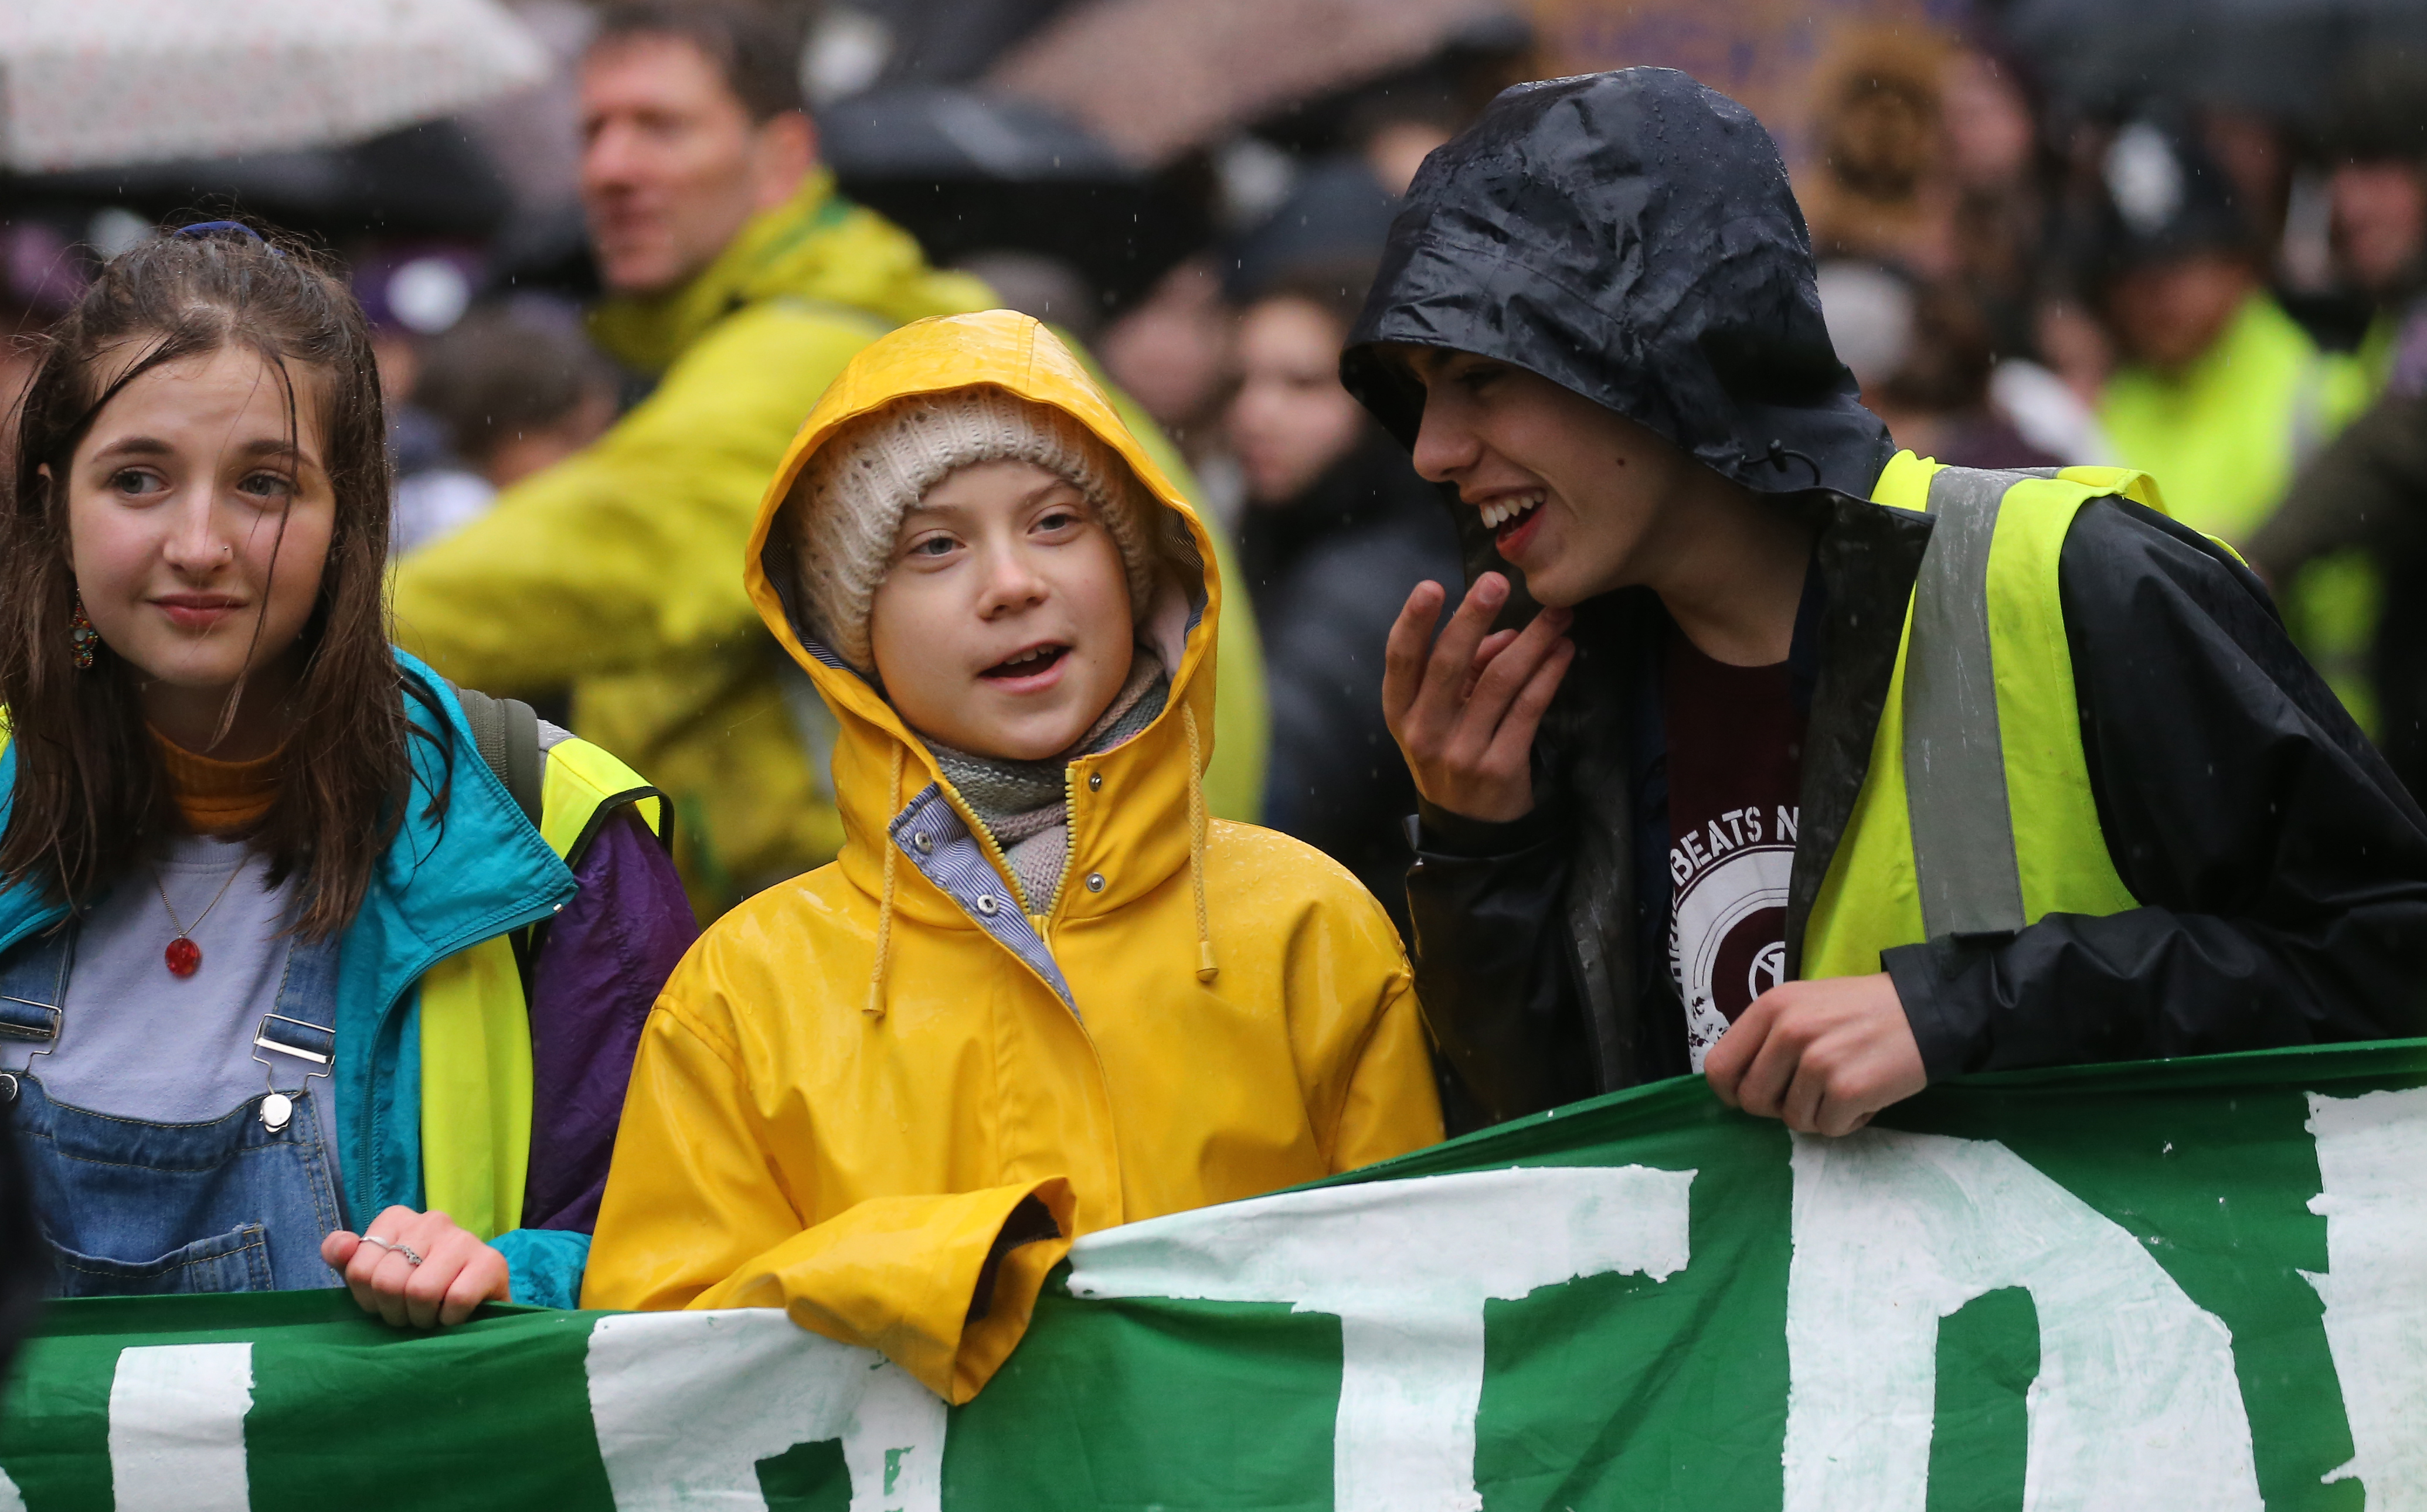 (centre) Environmental activist Greta Thunberg interacts with other youngsters during a Bristol Youth Strike 4 Climate protest in Bristol. Picture date: Friday February 28, 2020. Photo credit should read: EMPICS/EMPICS Entertainment